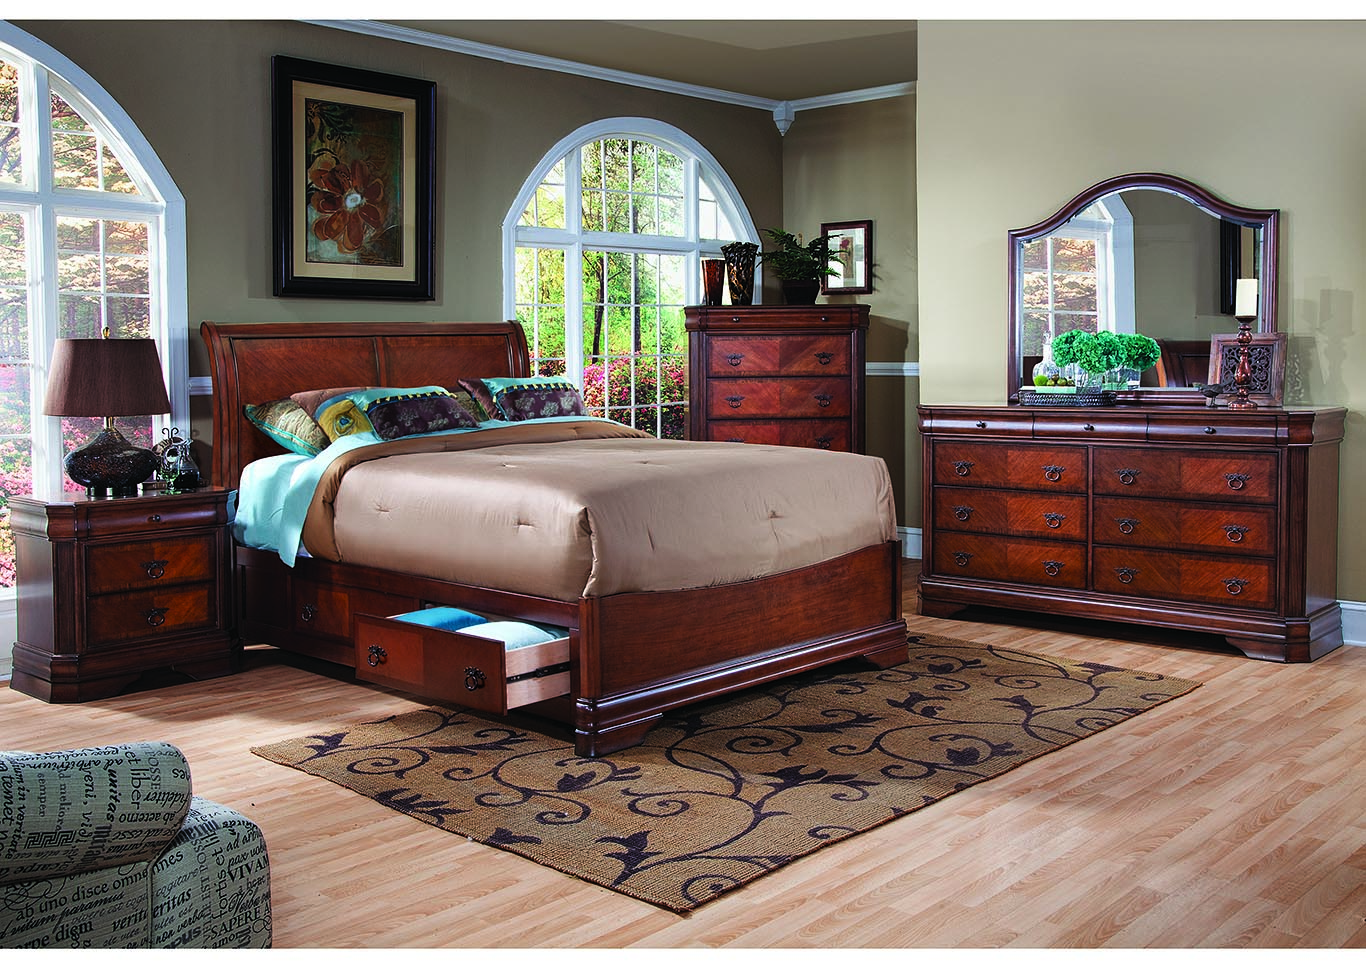 Sheridan Cherry Queen Bed w/Dresser and Mirror,New Classic